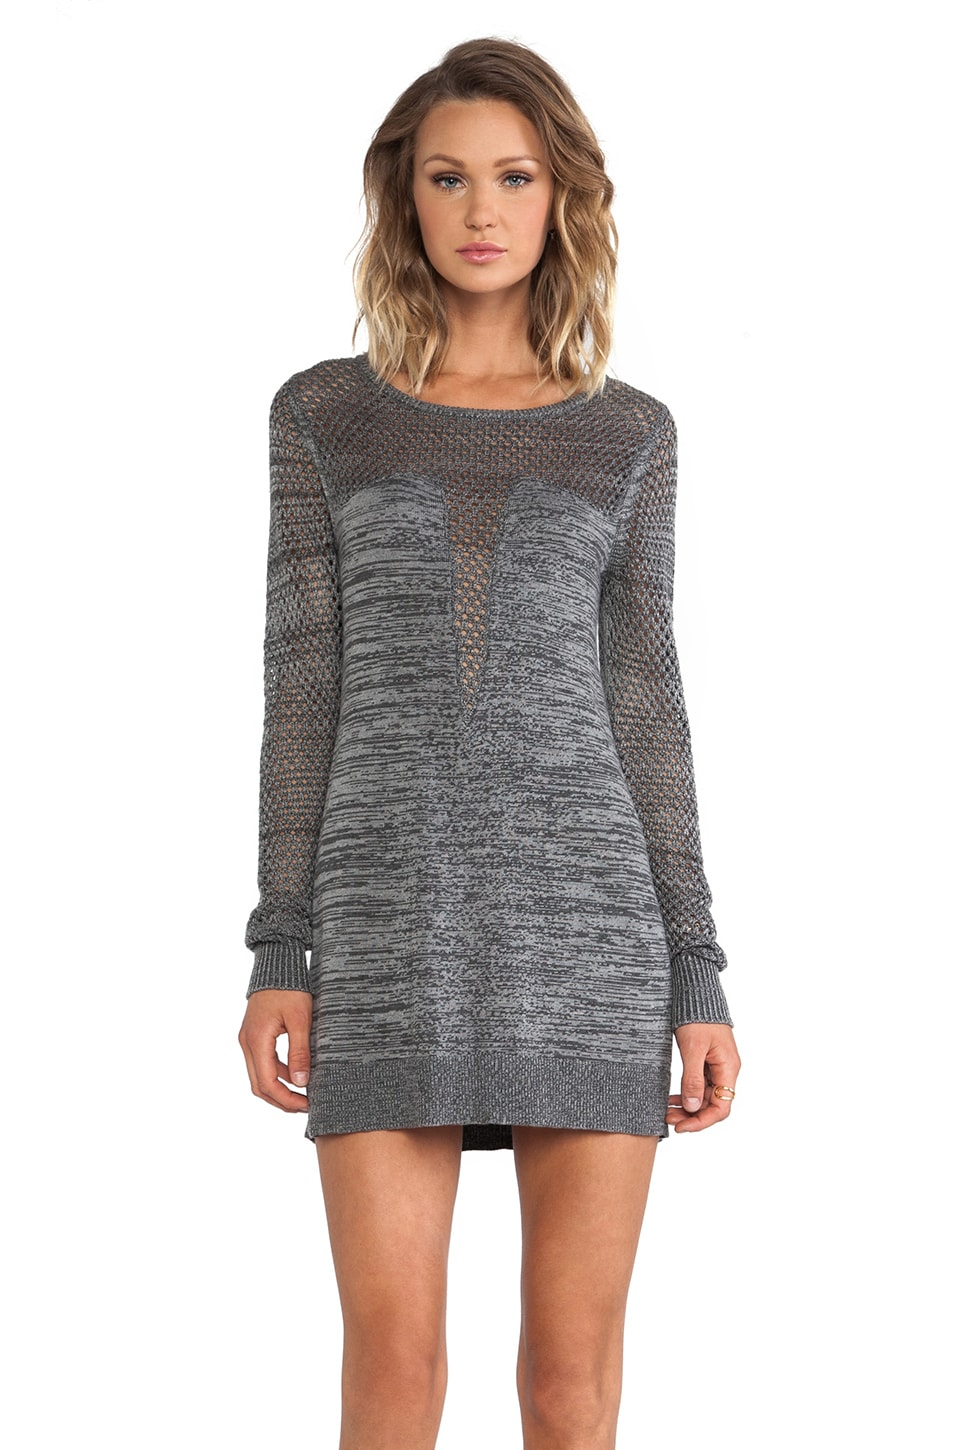 ELLIATT Duo Knit Dress in Charcoal & Grey Marle